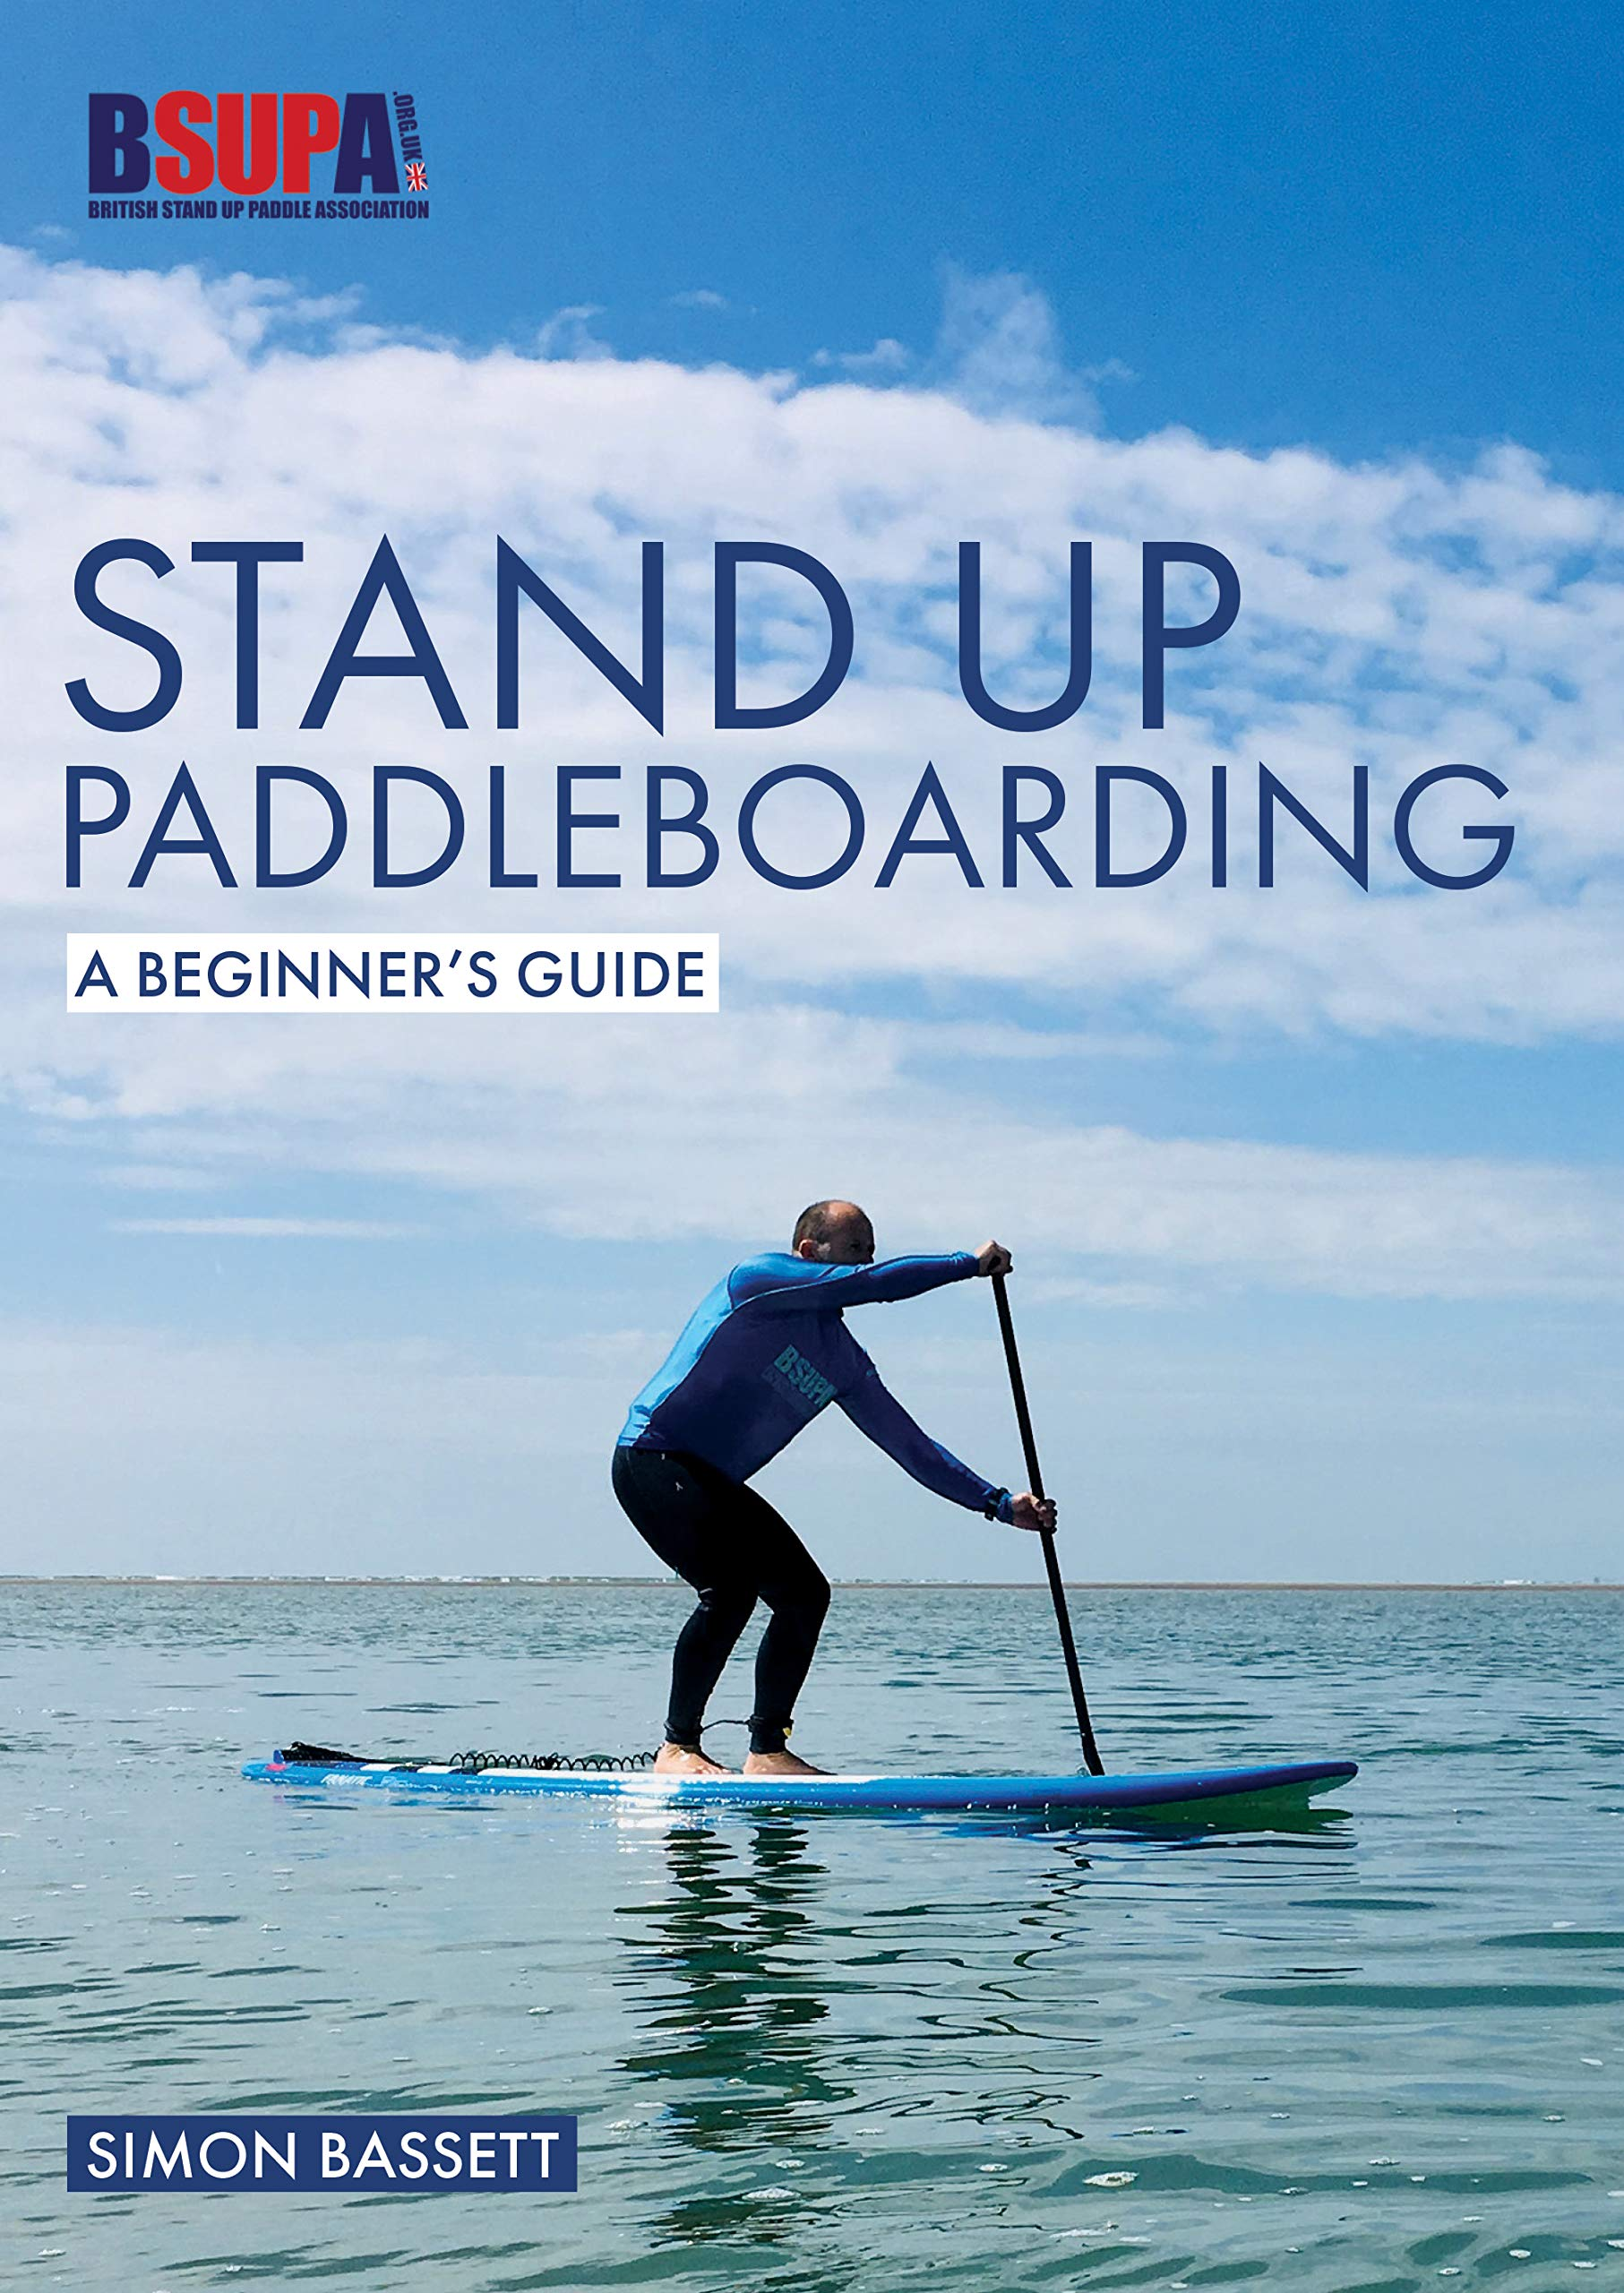 Stand Up Paddleboarding: A Beginner's Guide: Learn To SUP (Beginner's Guides Book 2) (English Edition)